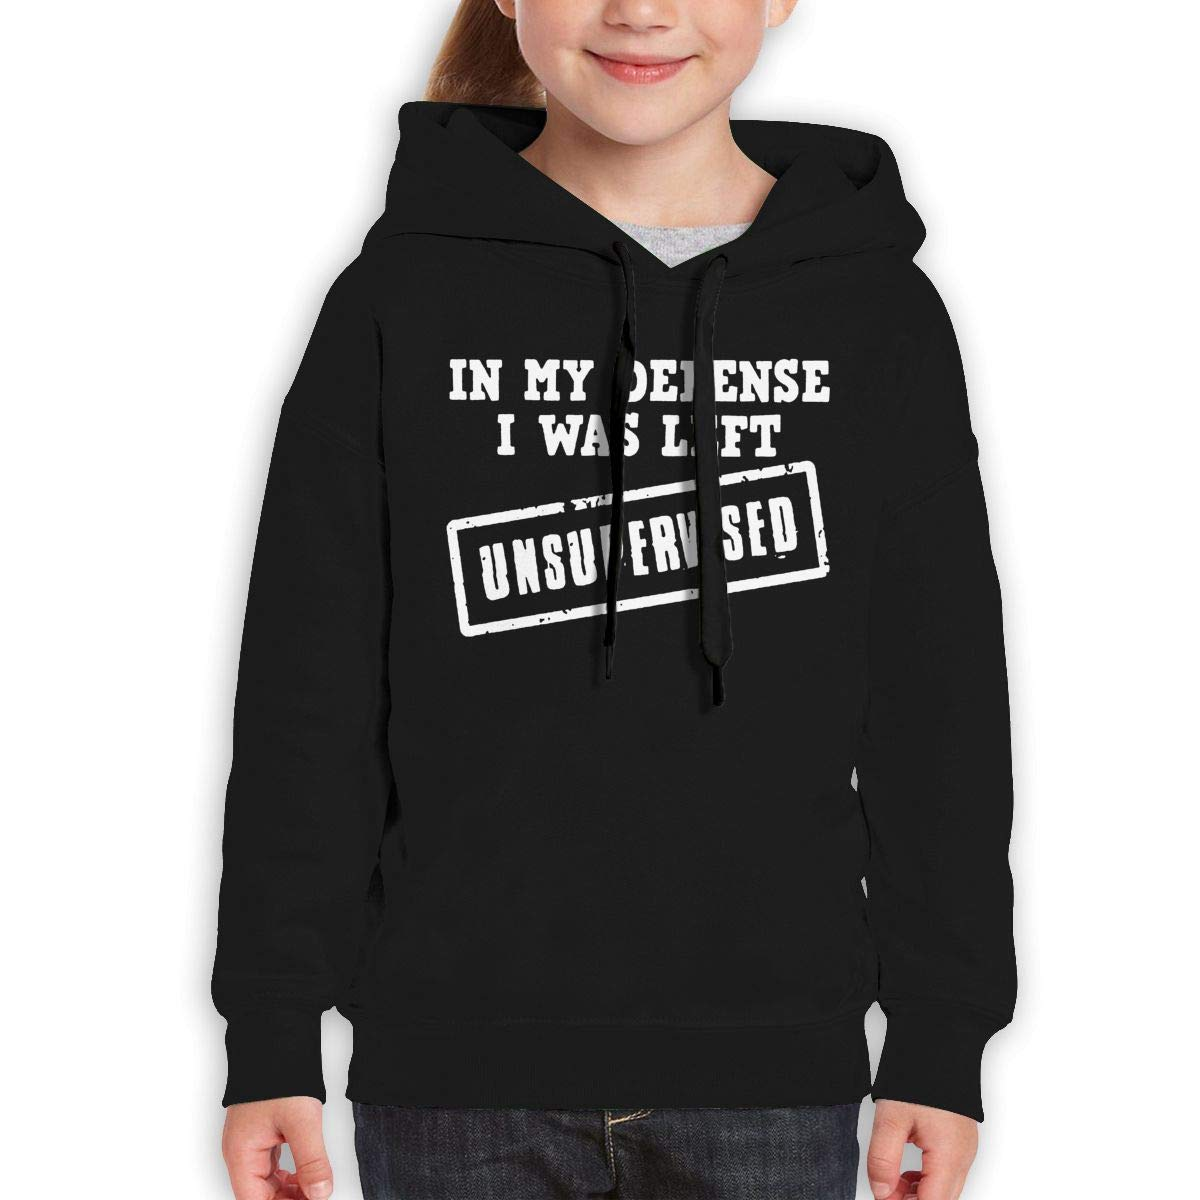 Boys Girls in My Defense I was Left Unsupervised Teen Youth Hoodie Black